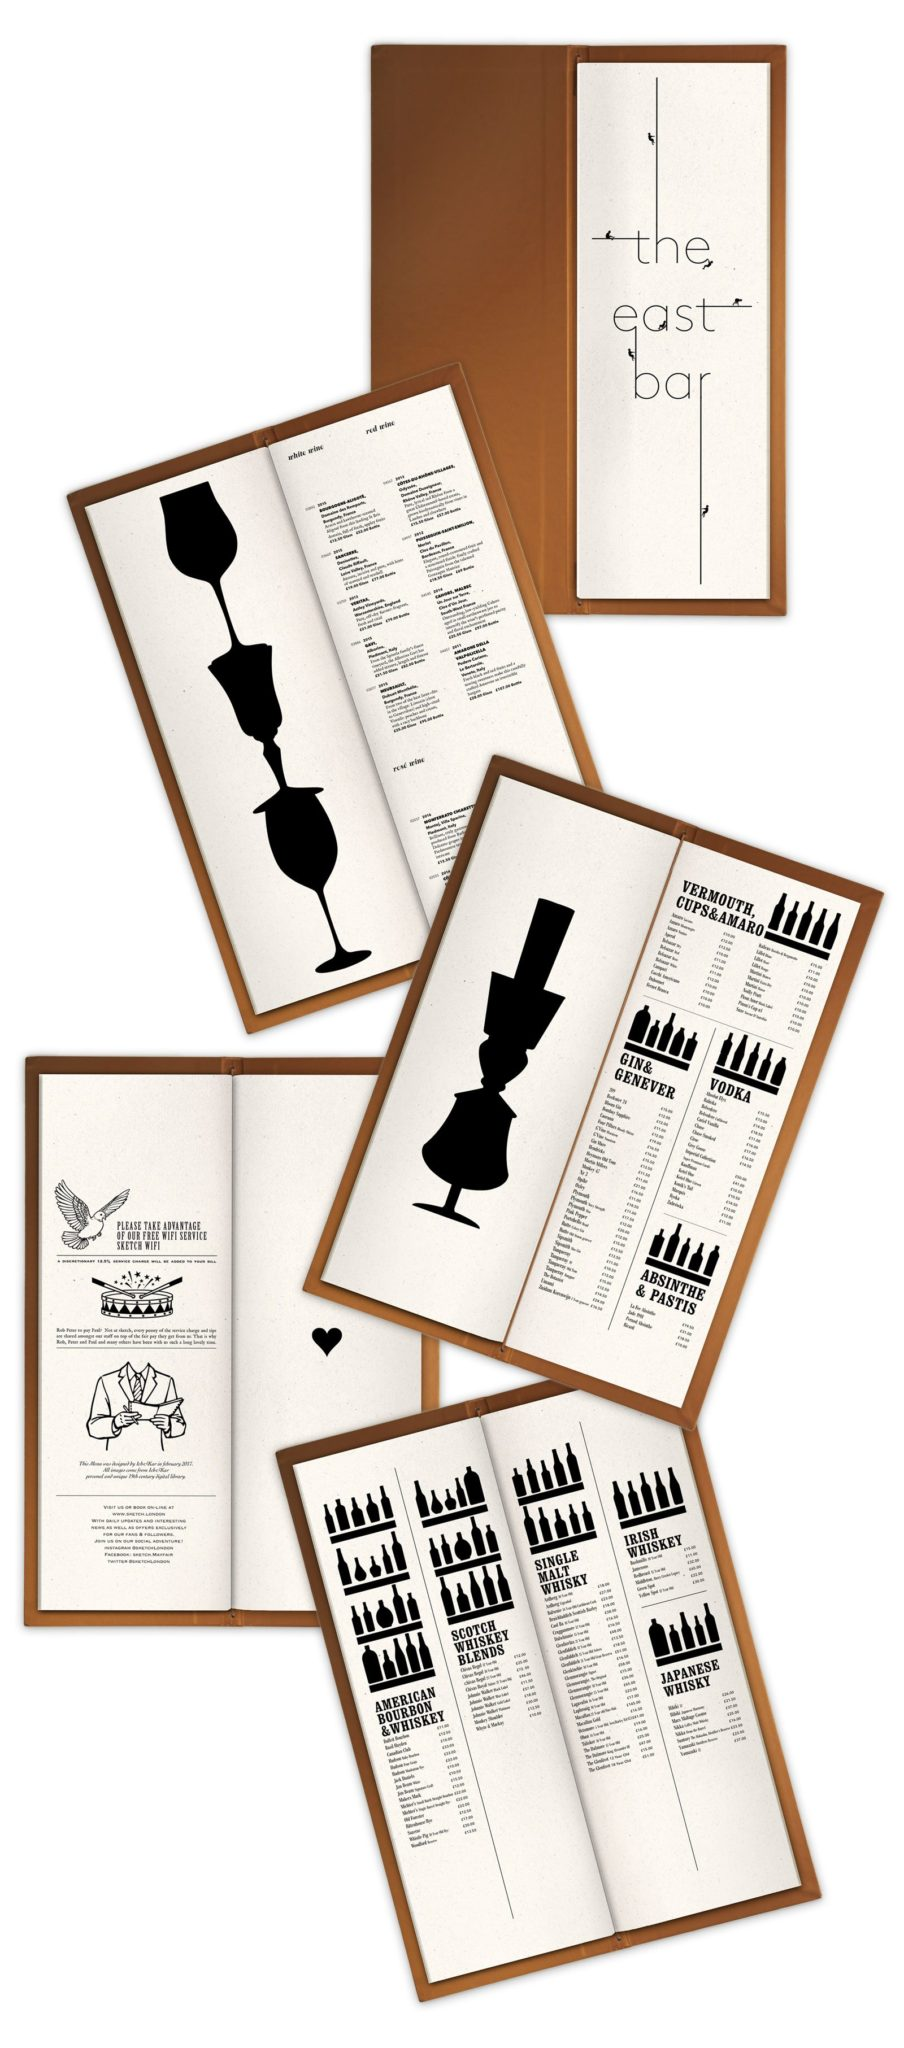 cartes cocktails sketch london cocktails and spirits list ichetkar silhouette